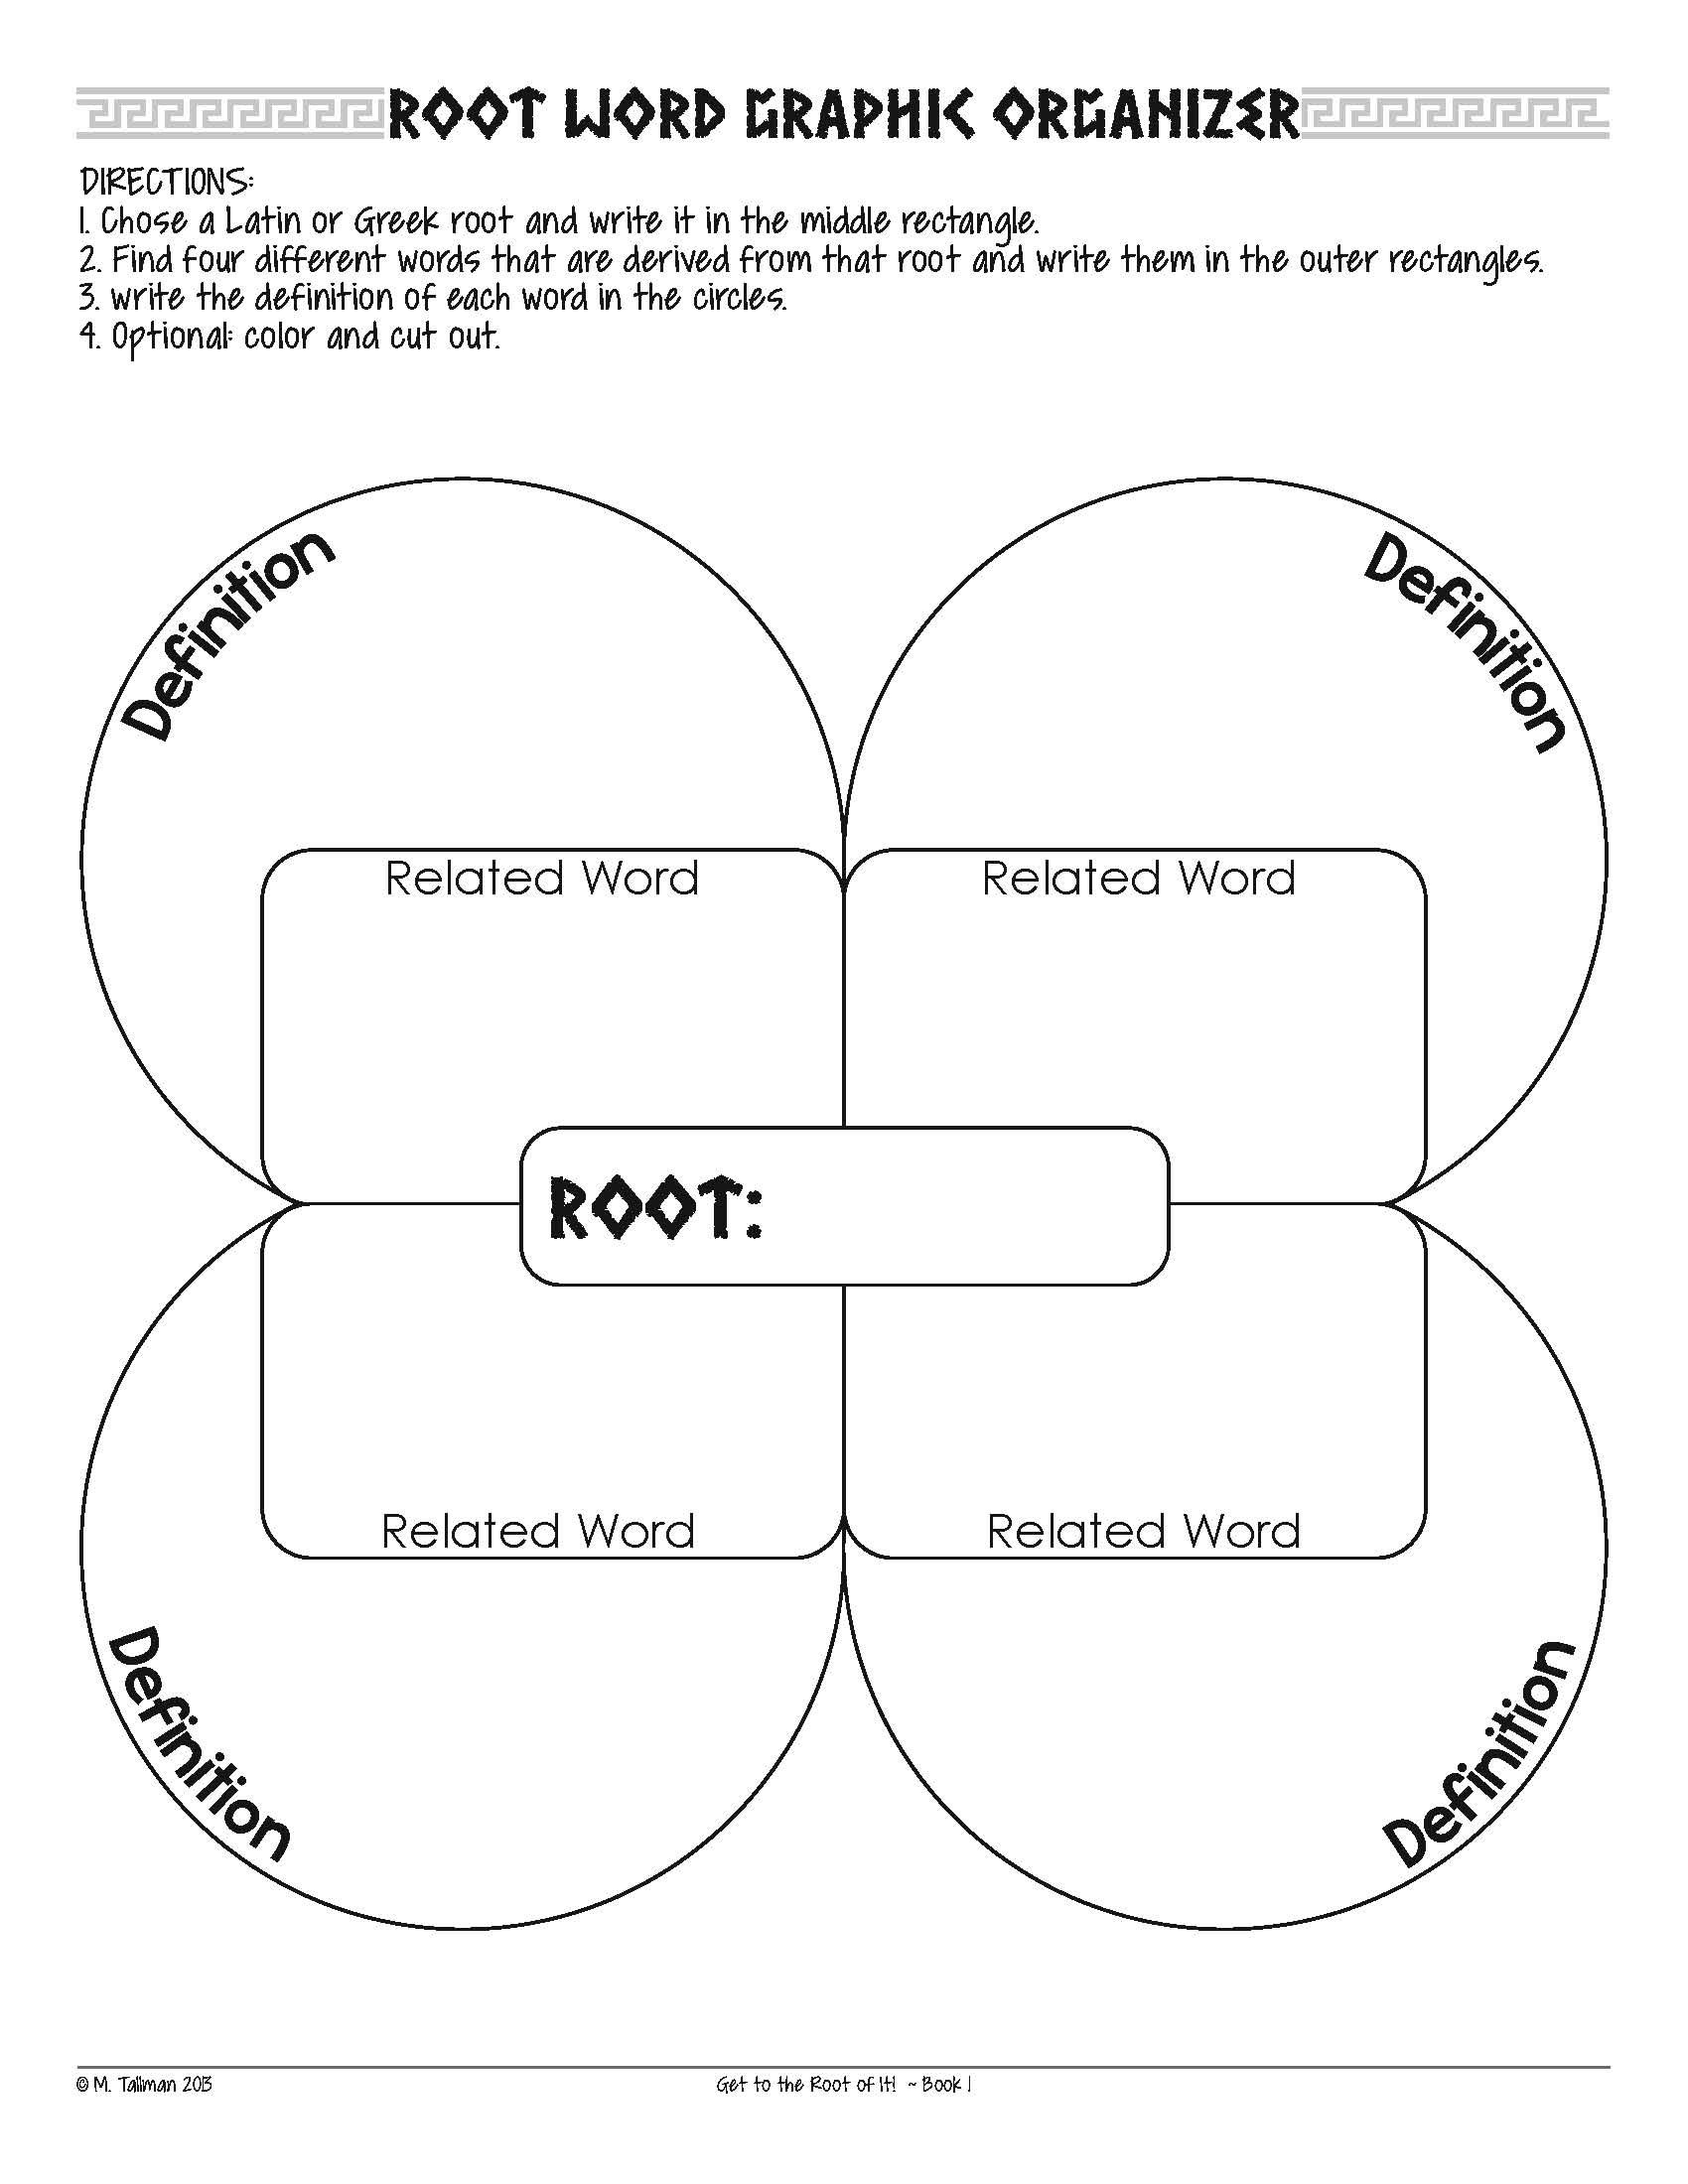 Free Greek And Latin Root Word Activities | Literacy Teaching - Free Printable Greek And Latin Roots